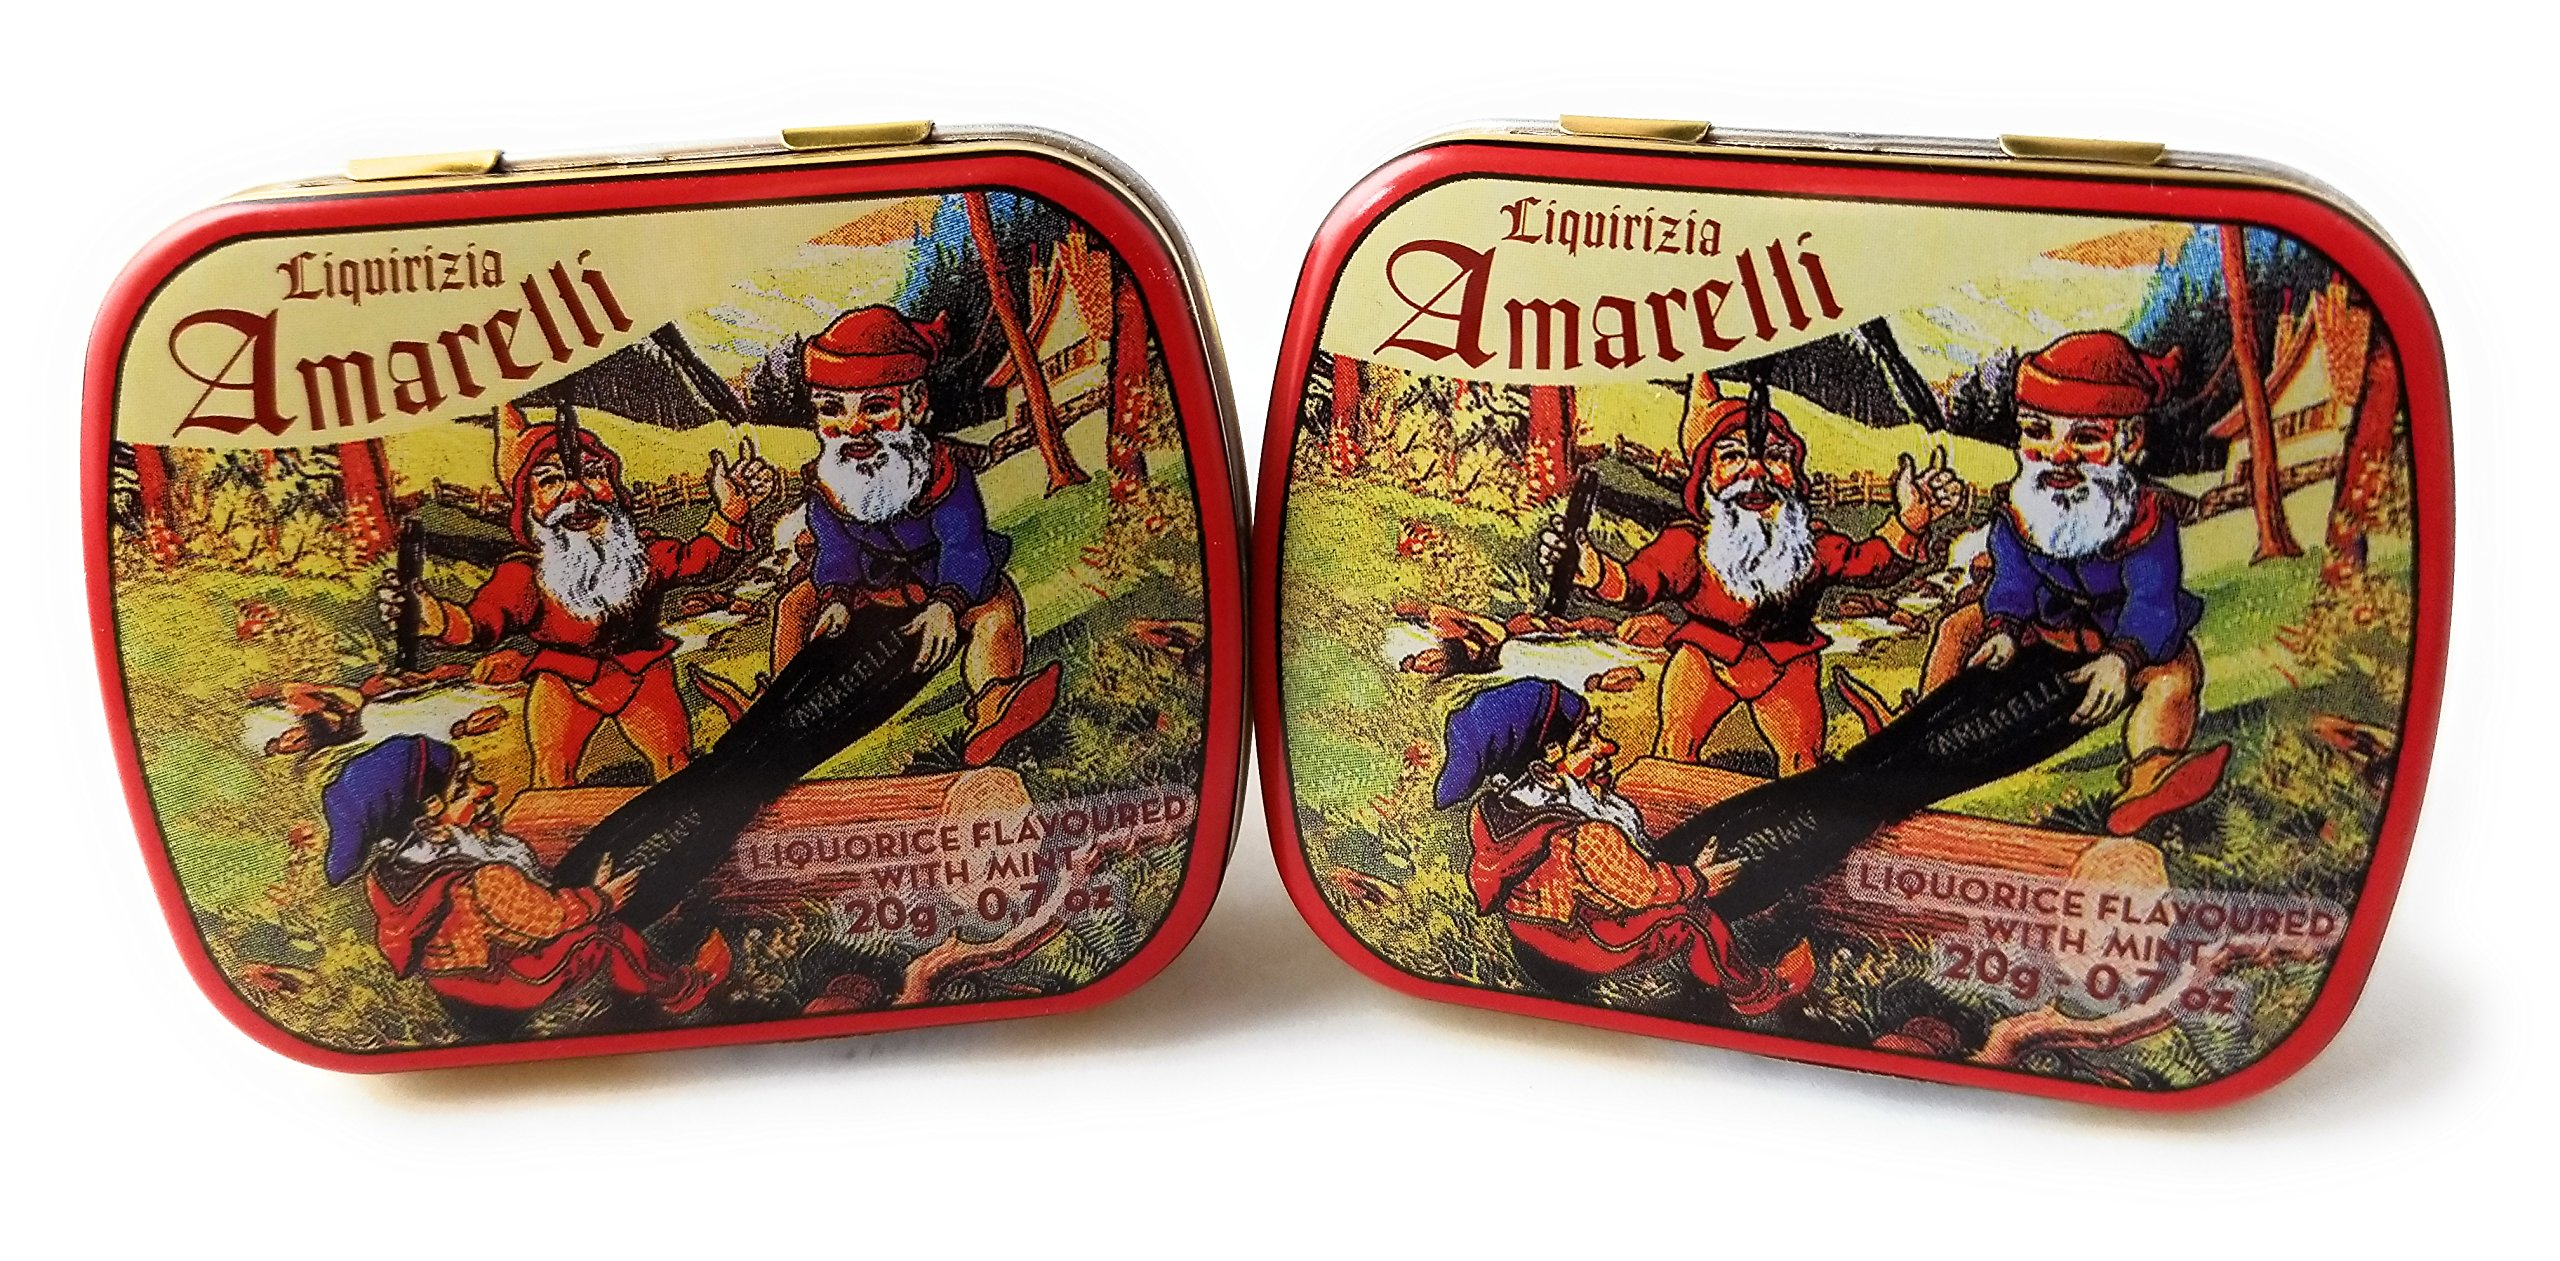 Amarelli - Pure Liquorice (Licorice) With Mint Small All Natural Hard Candy 2-20 gram Packages - Calabria Italy.